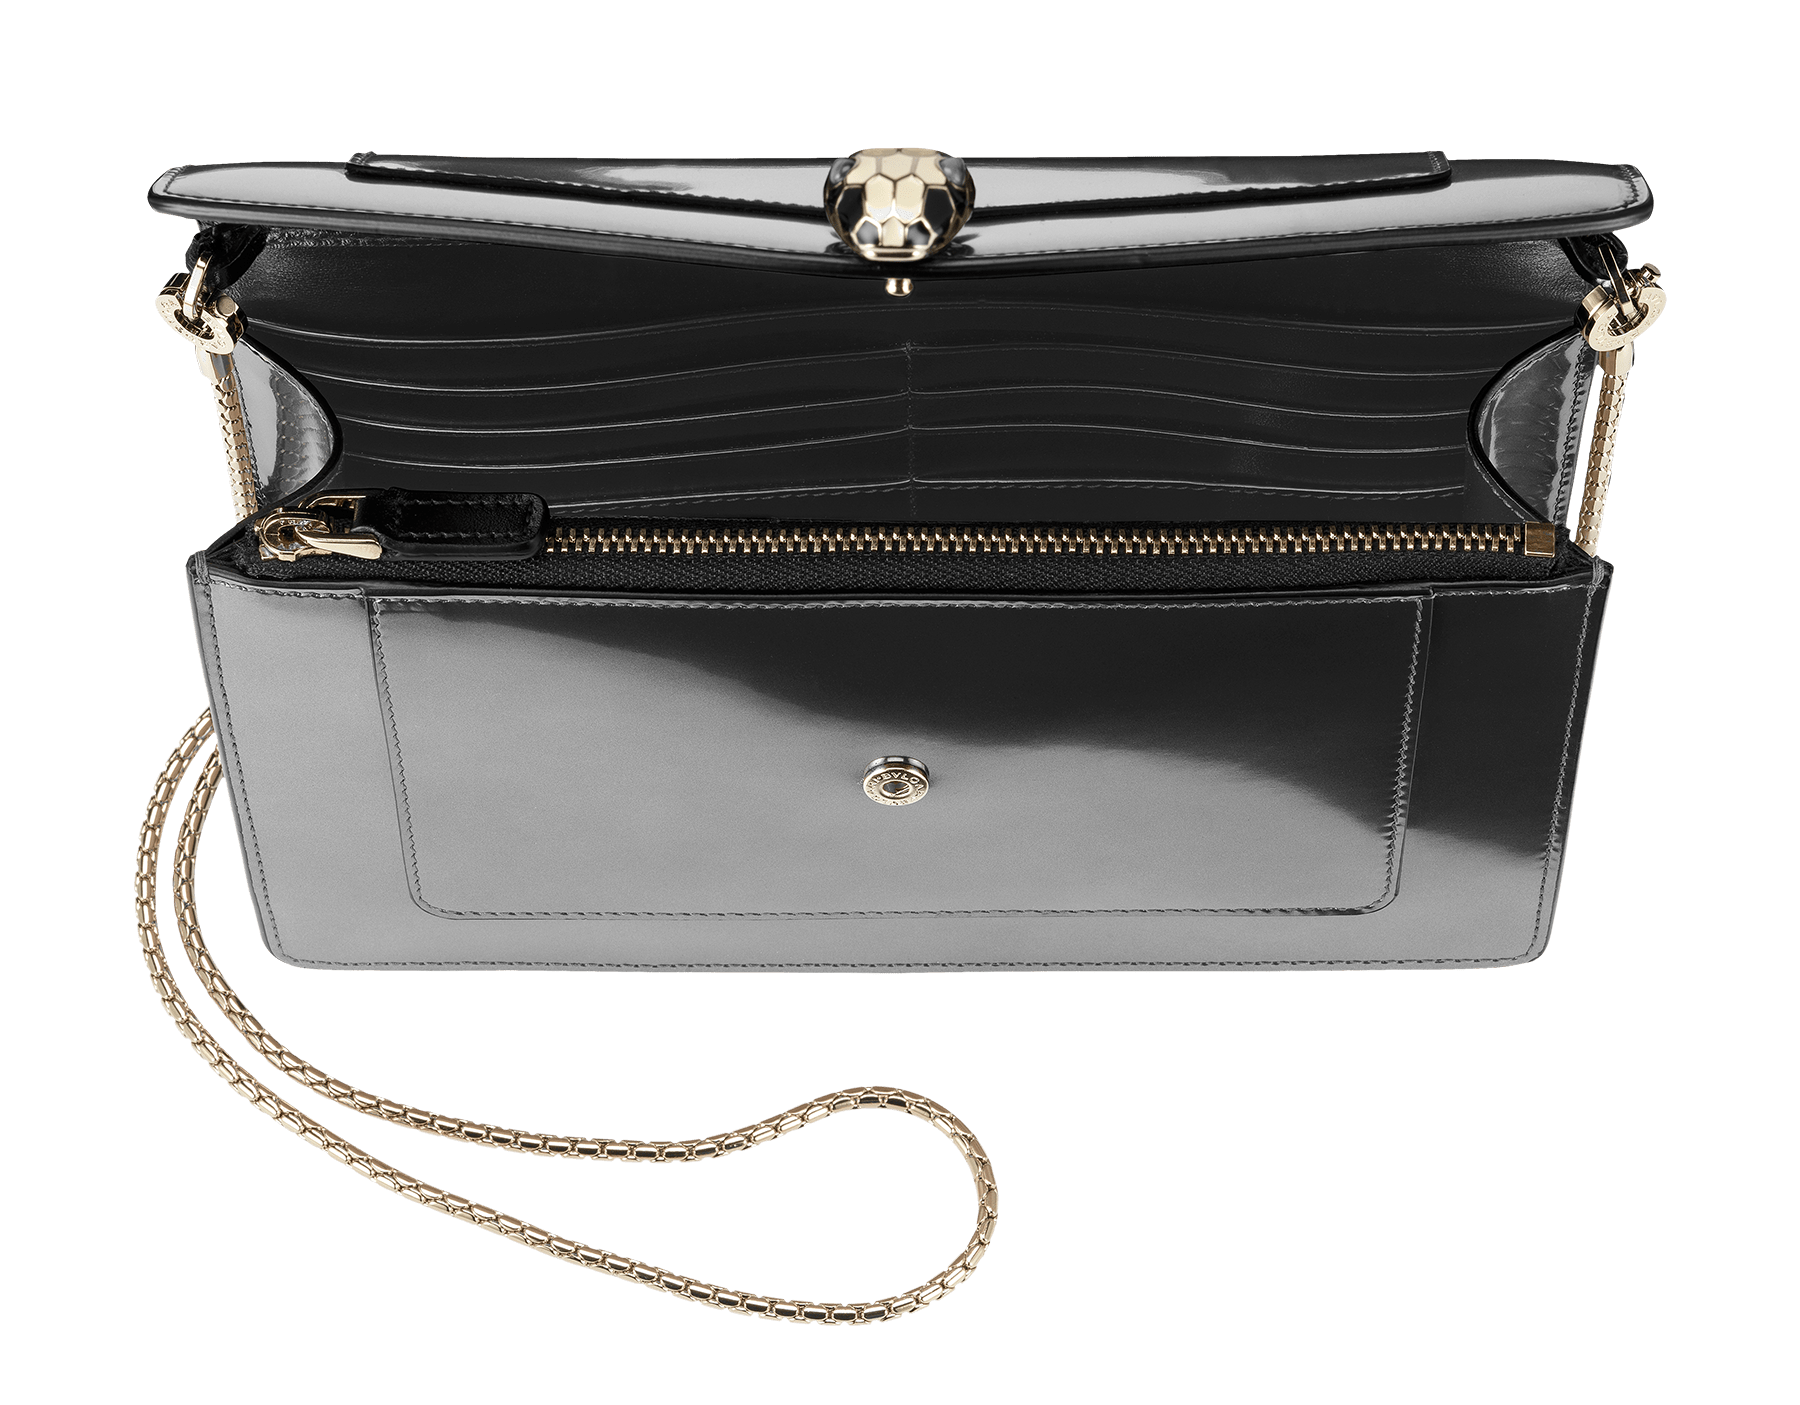 Chain pouch in royal sapphire brushed metallic and black calf leather, with brass light gold plated hardware. Serpenti head stud closure in black and white enamel with eyes in green malachite. SEA-CHAINPOUCH-BMCL image 2